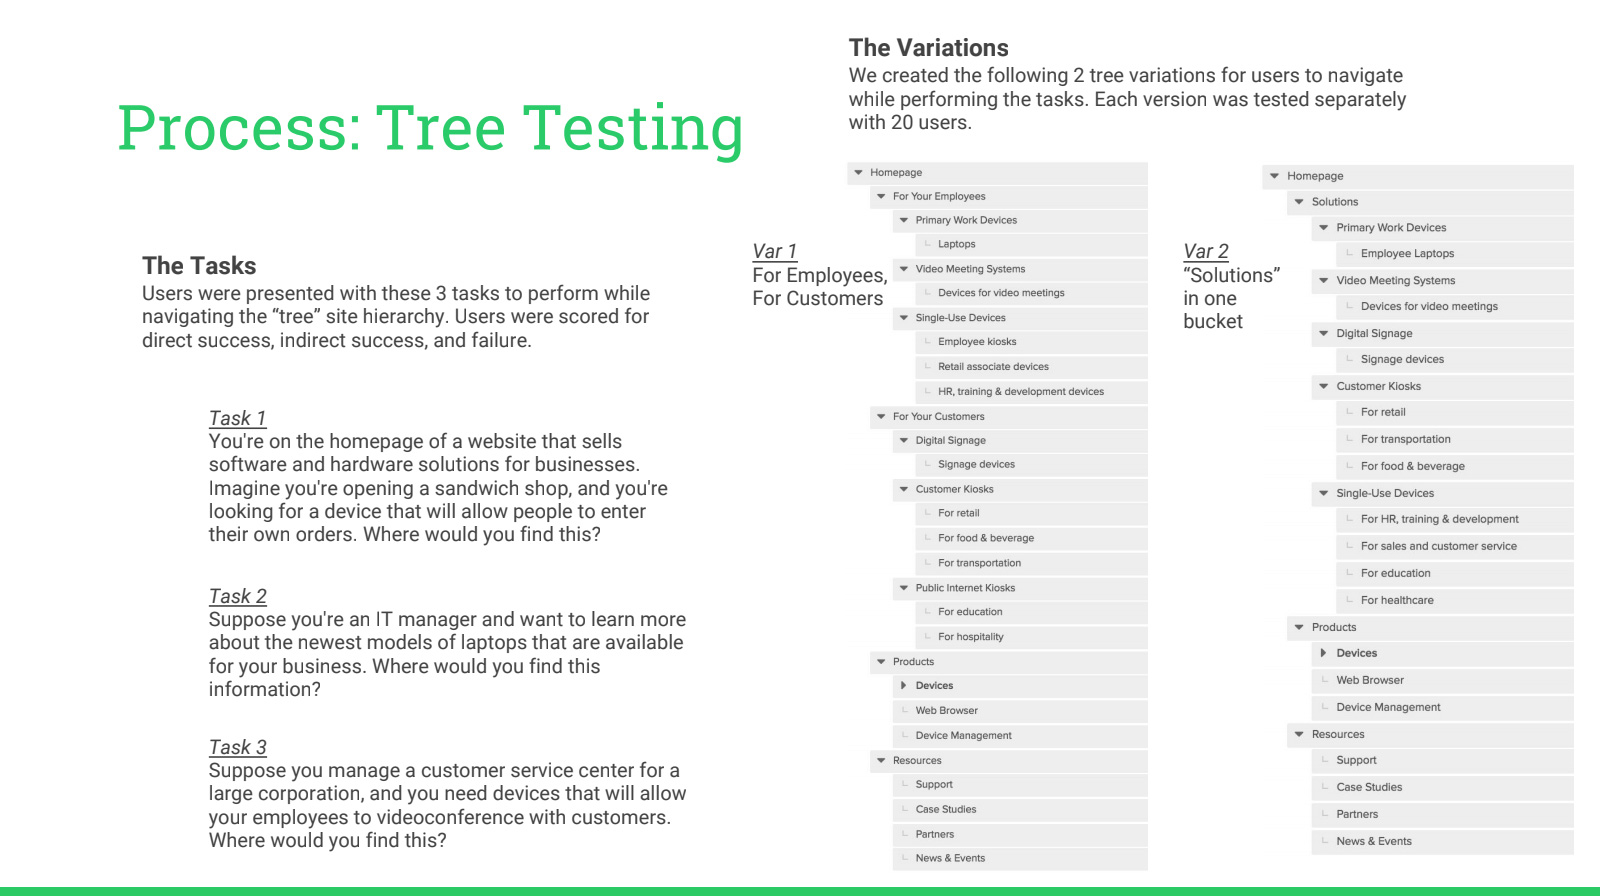 Set of tasks for the tree test